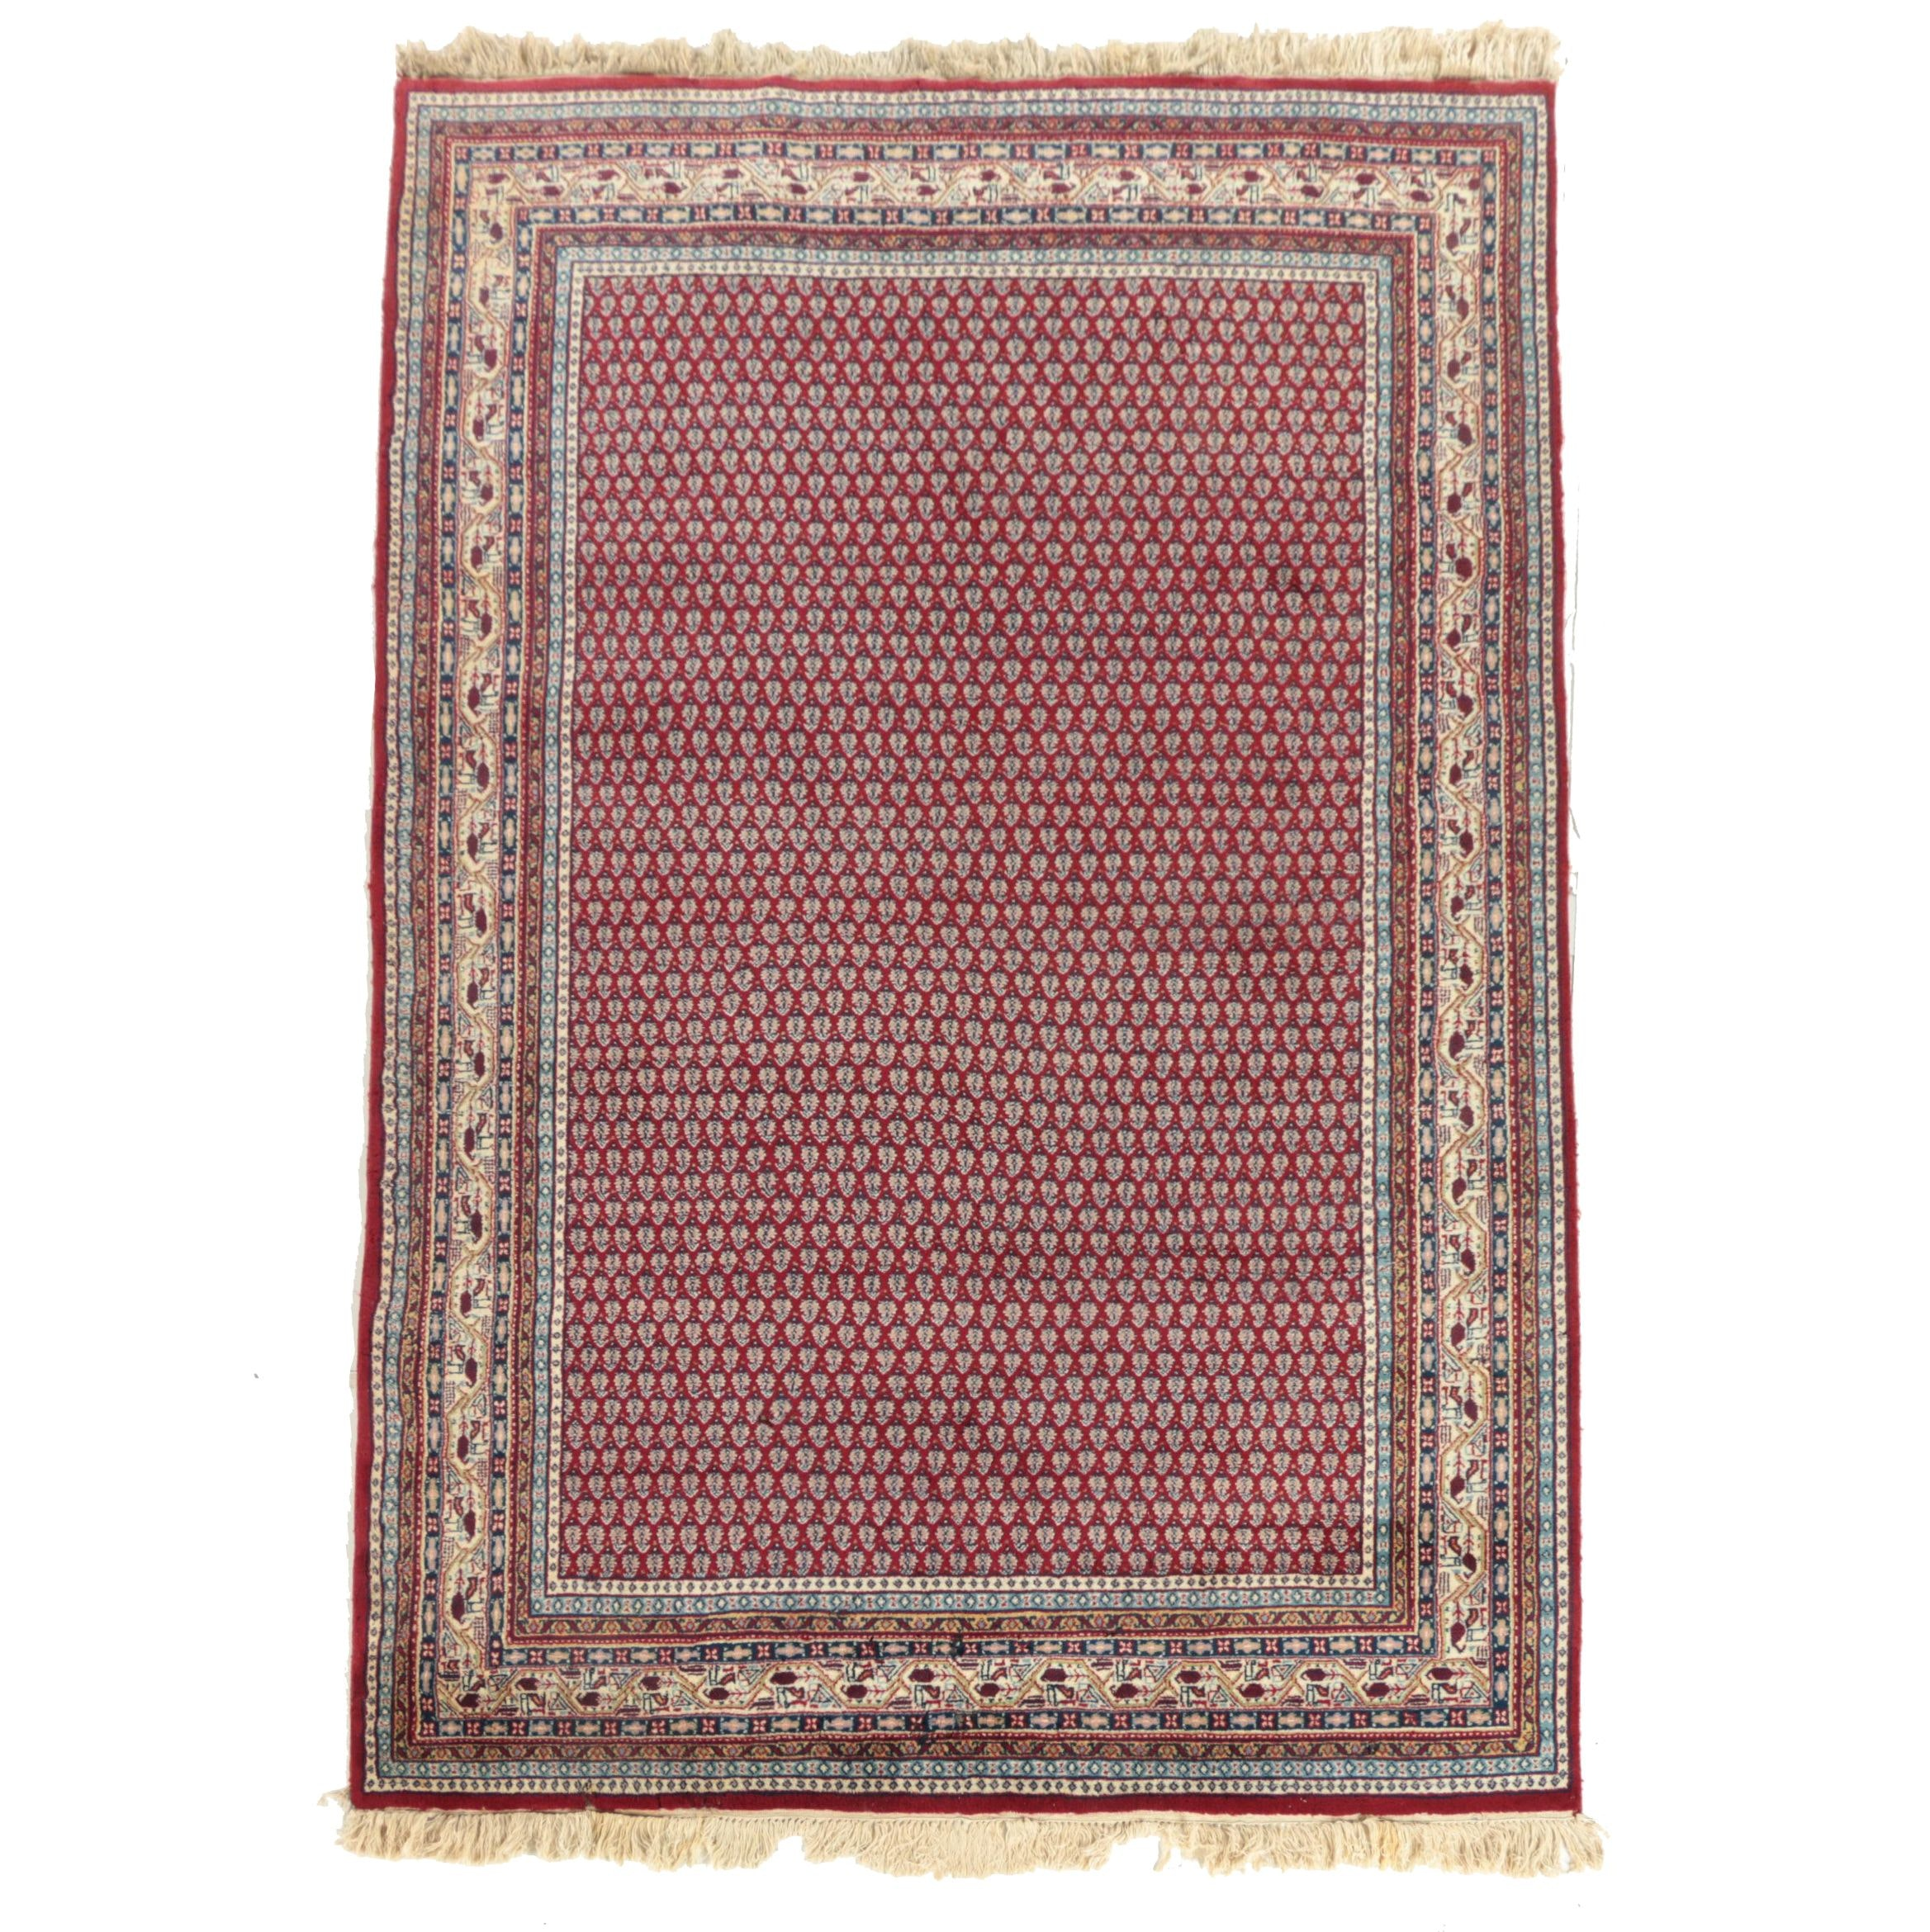 Vintage Hand-Knotted Persian Mir Serabend Area Rug